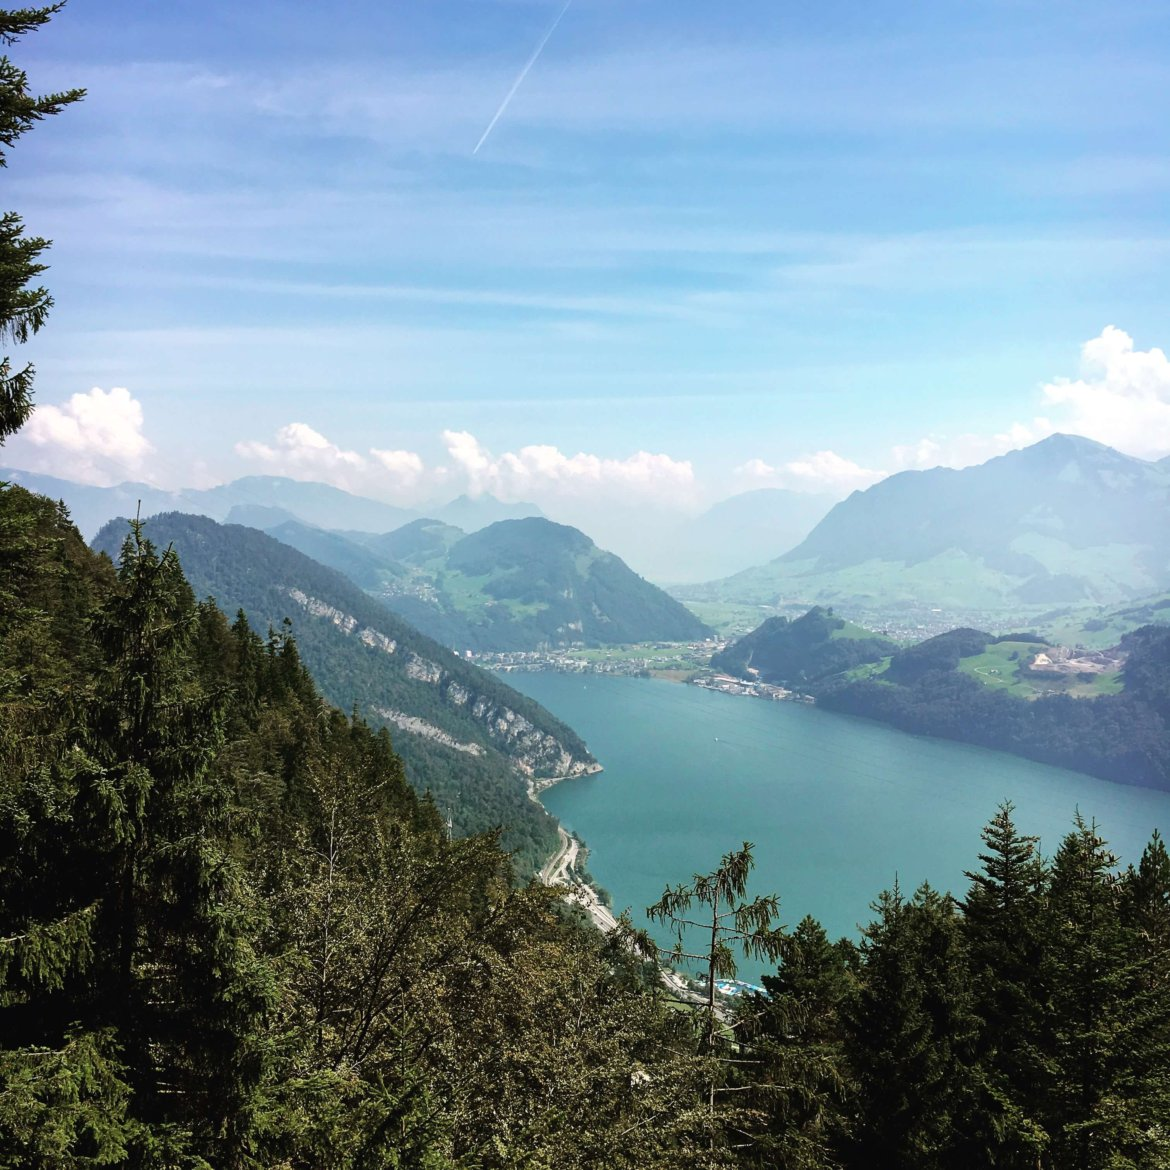 View of Lake Lucerne from the cog railway on Mt Pilatus